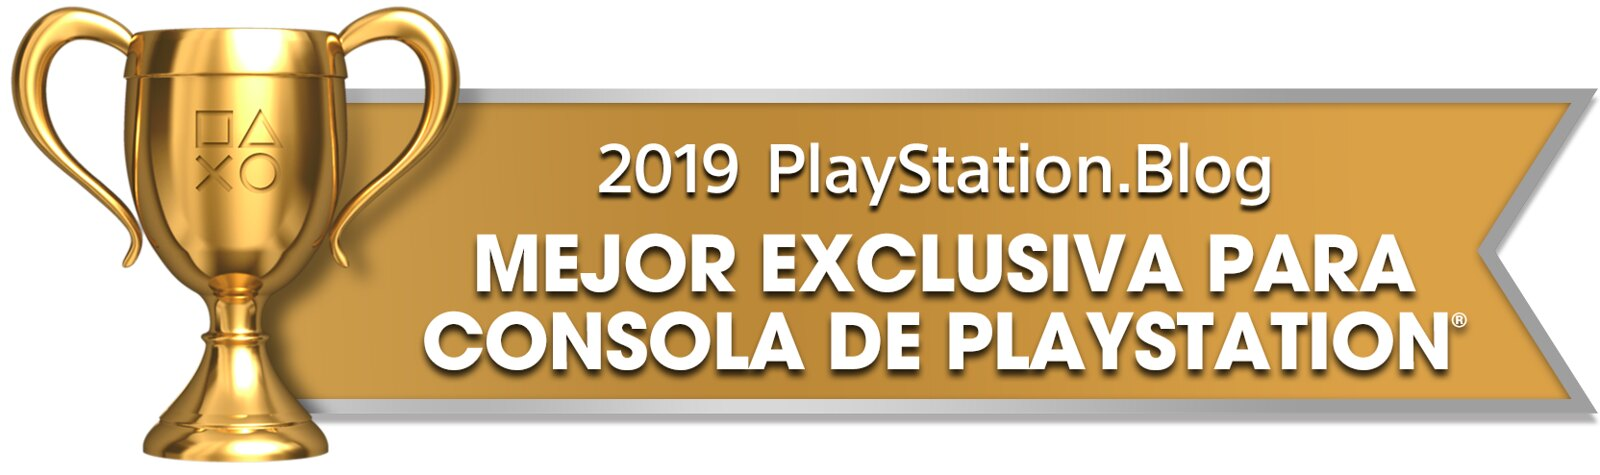 PS Blog Game of the Year 2019 - Best Console Exclusive - 2 - Gold